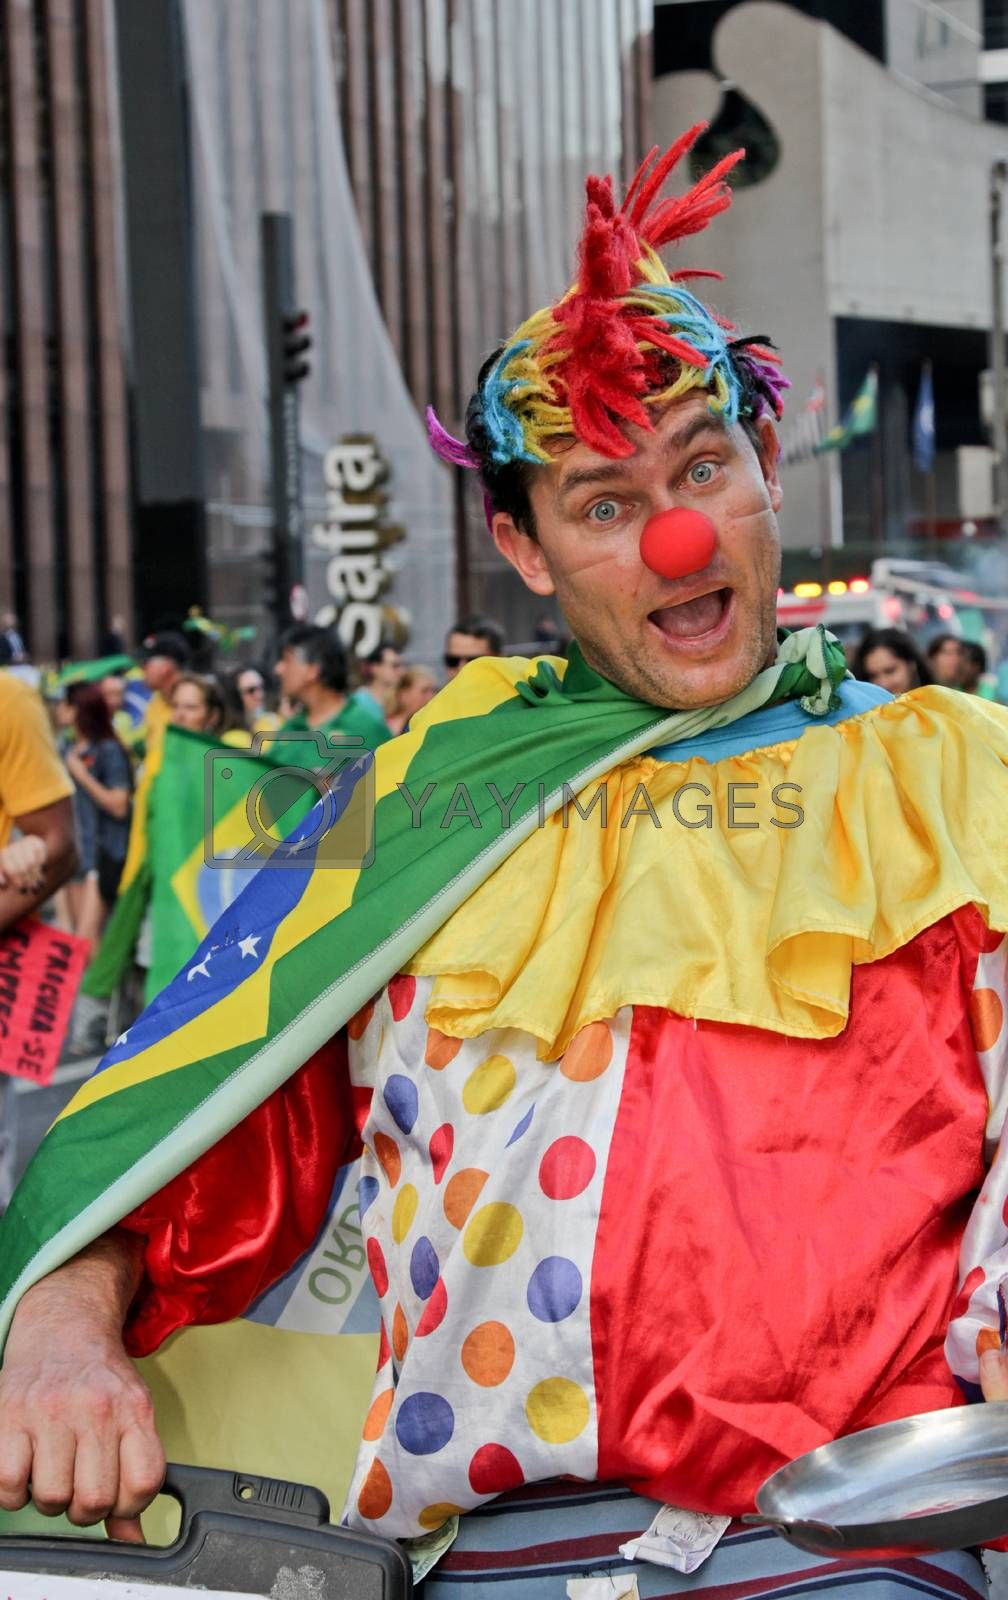 SAO PAULO, BRAZIL August 16, 2015: An unidentified man with clown costume in the protest against federal government corruption in Sao Paulo Brazil. Protesters call for the impeachment of President Dilma Rousseff.